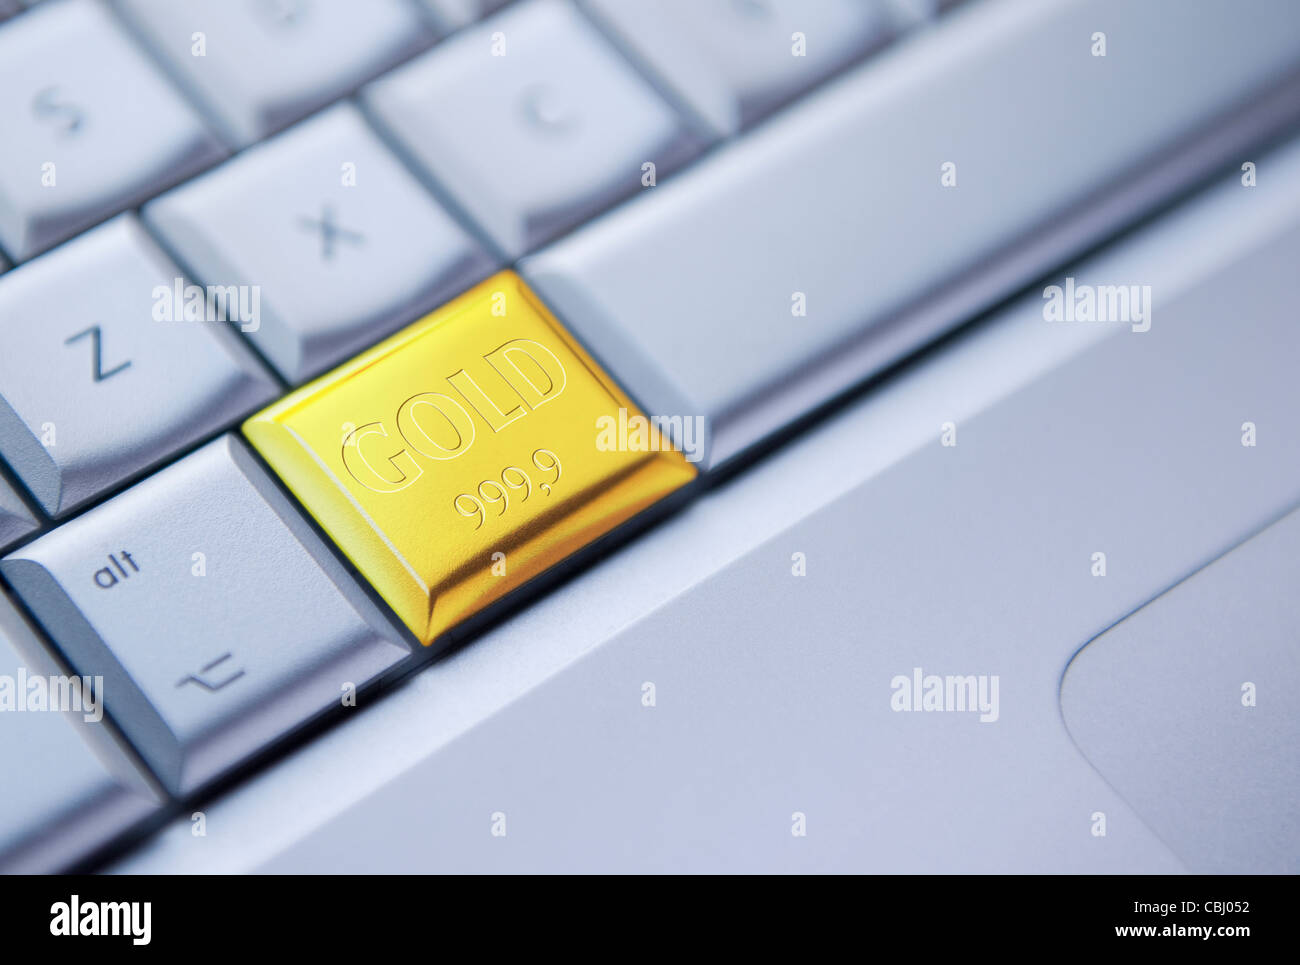 Detail of a keyboard with one key as a solid gold bar - Stock Image